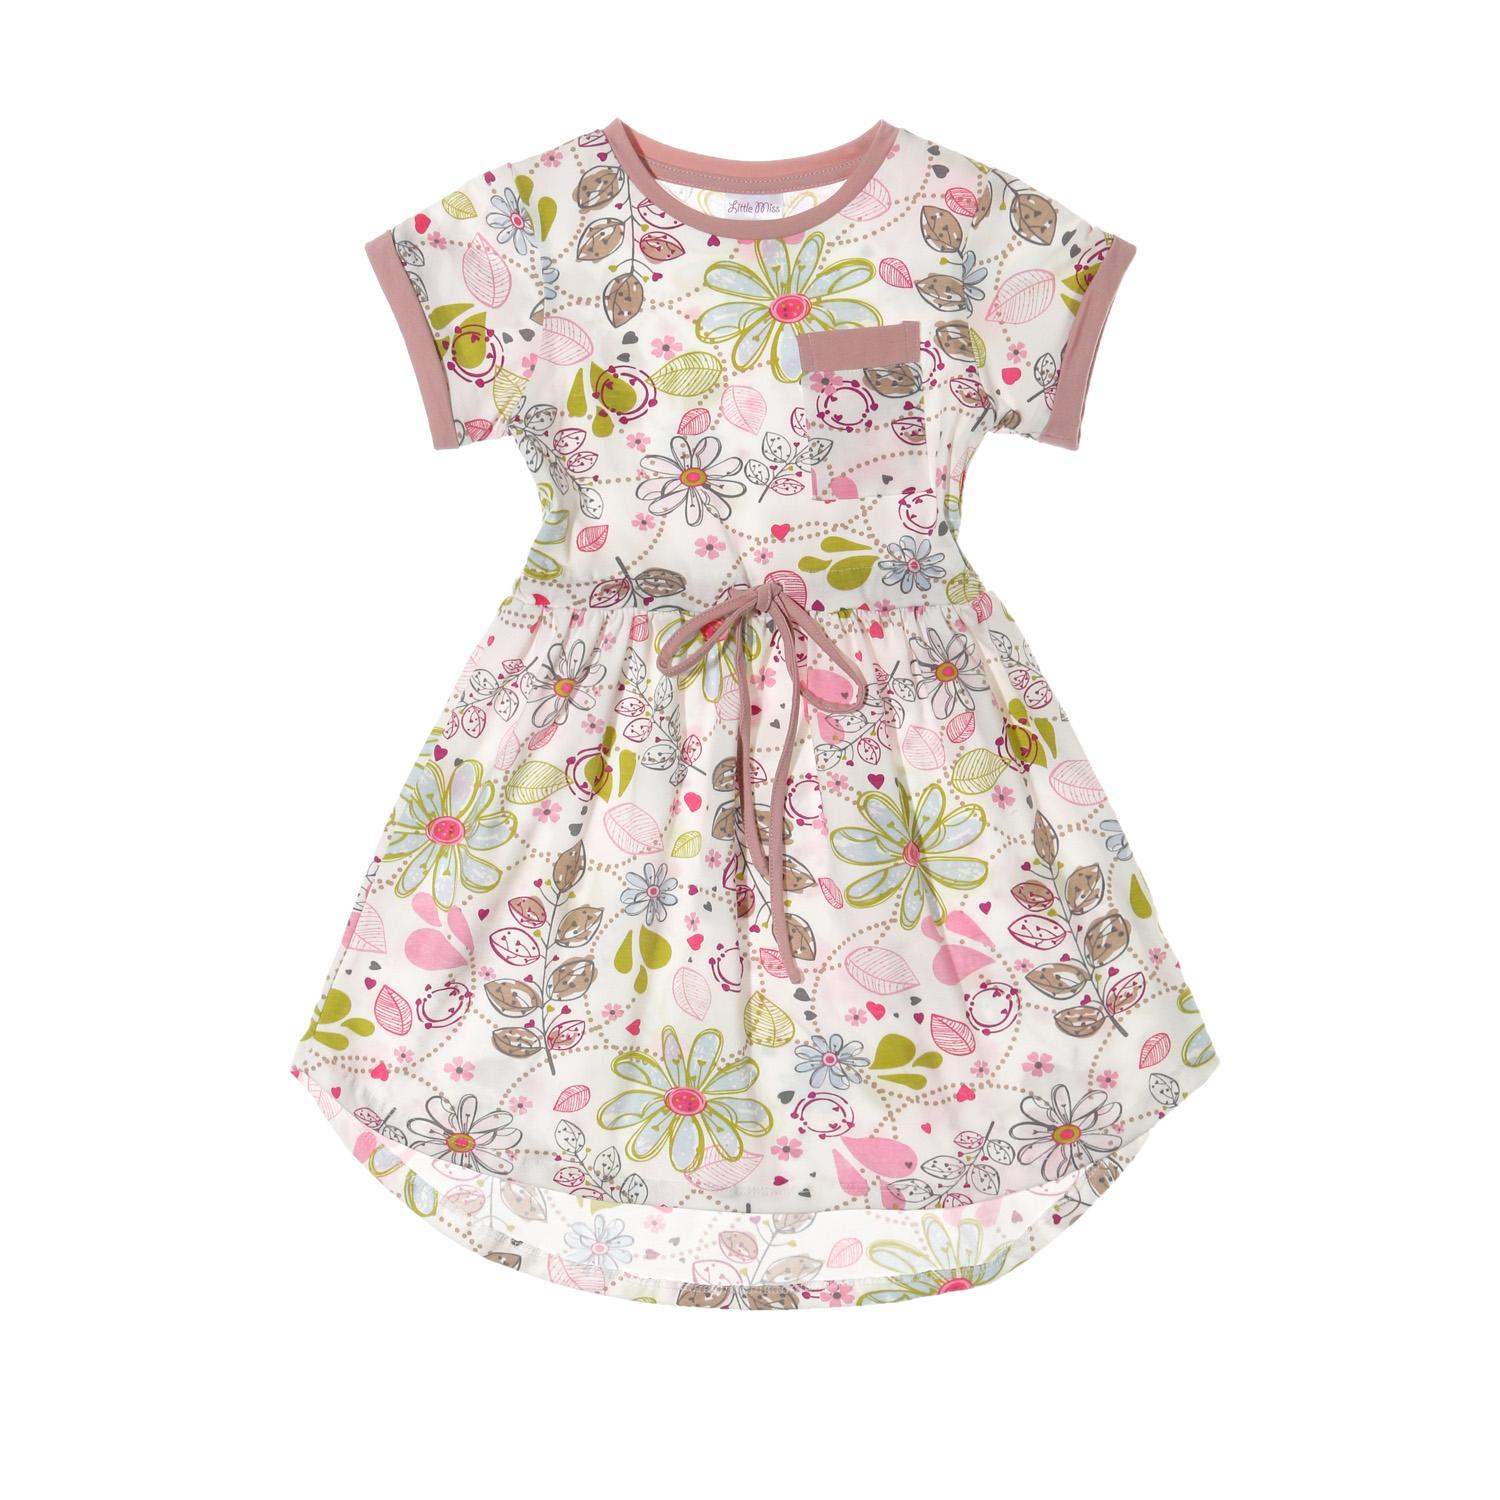 f4edc1af72b Girls Dresses for sale - Baby Dresses for Girls online brands ...